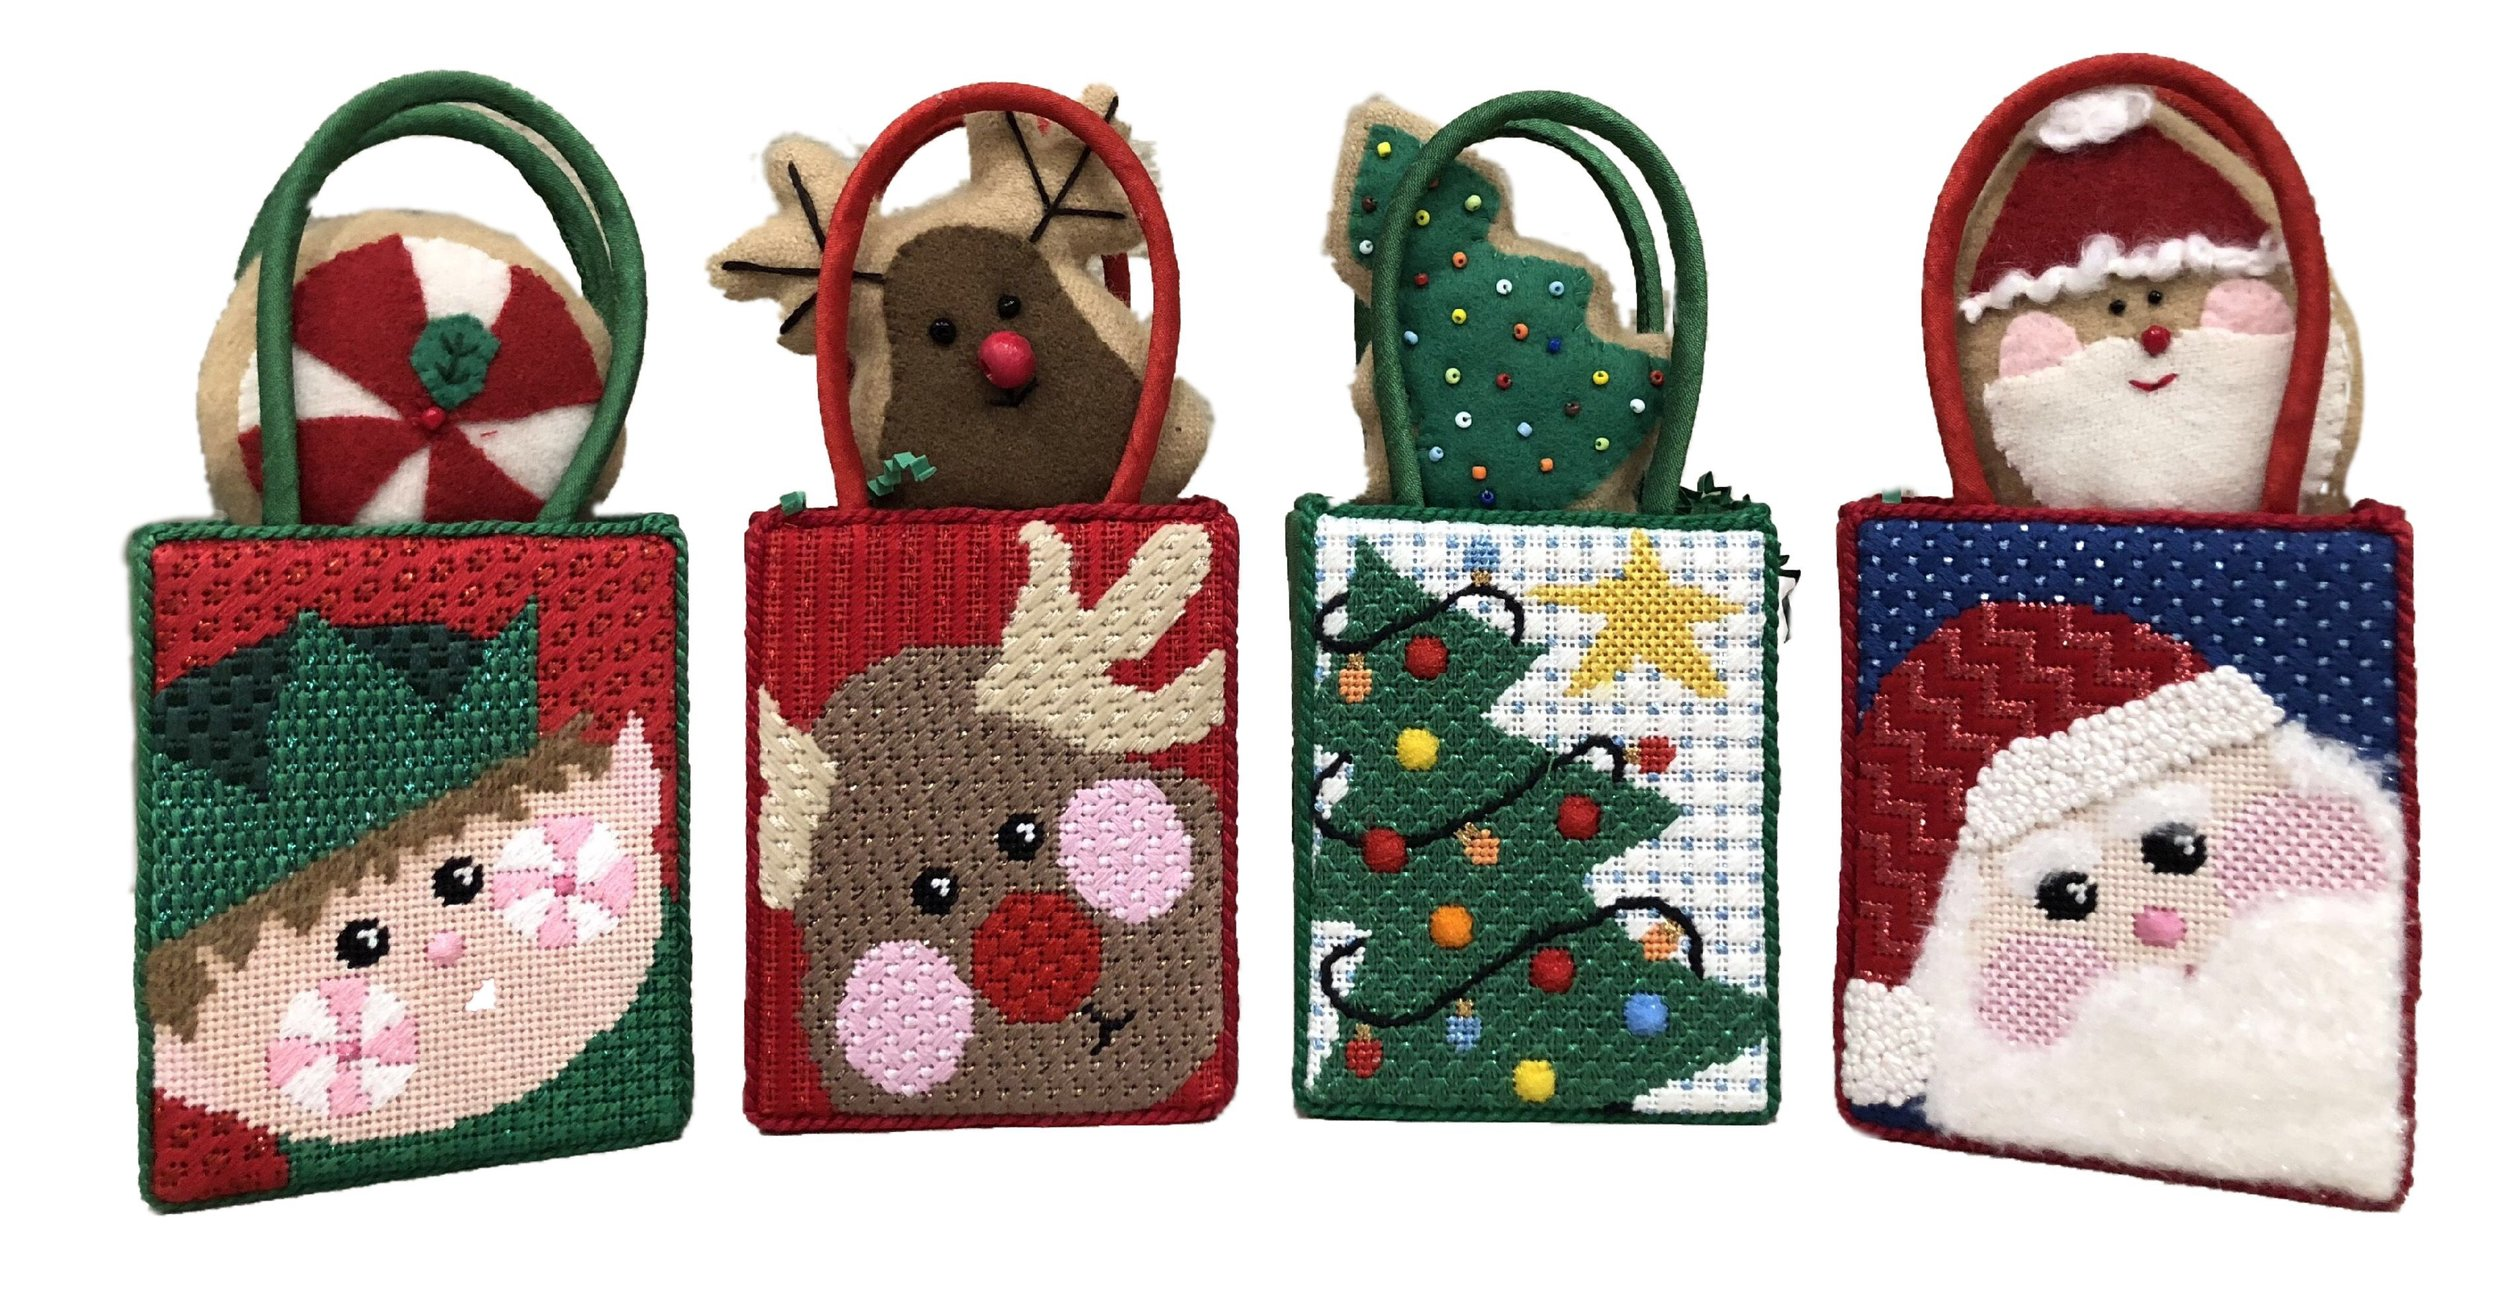 Four Christmas Mini Bags.JPG